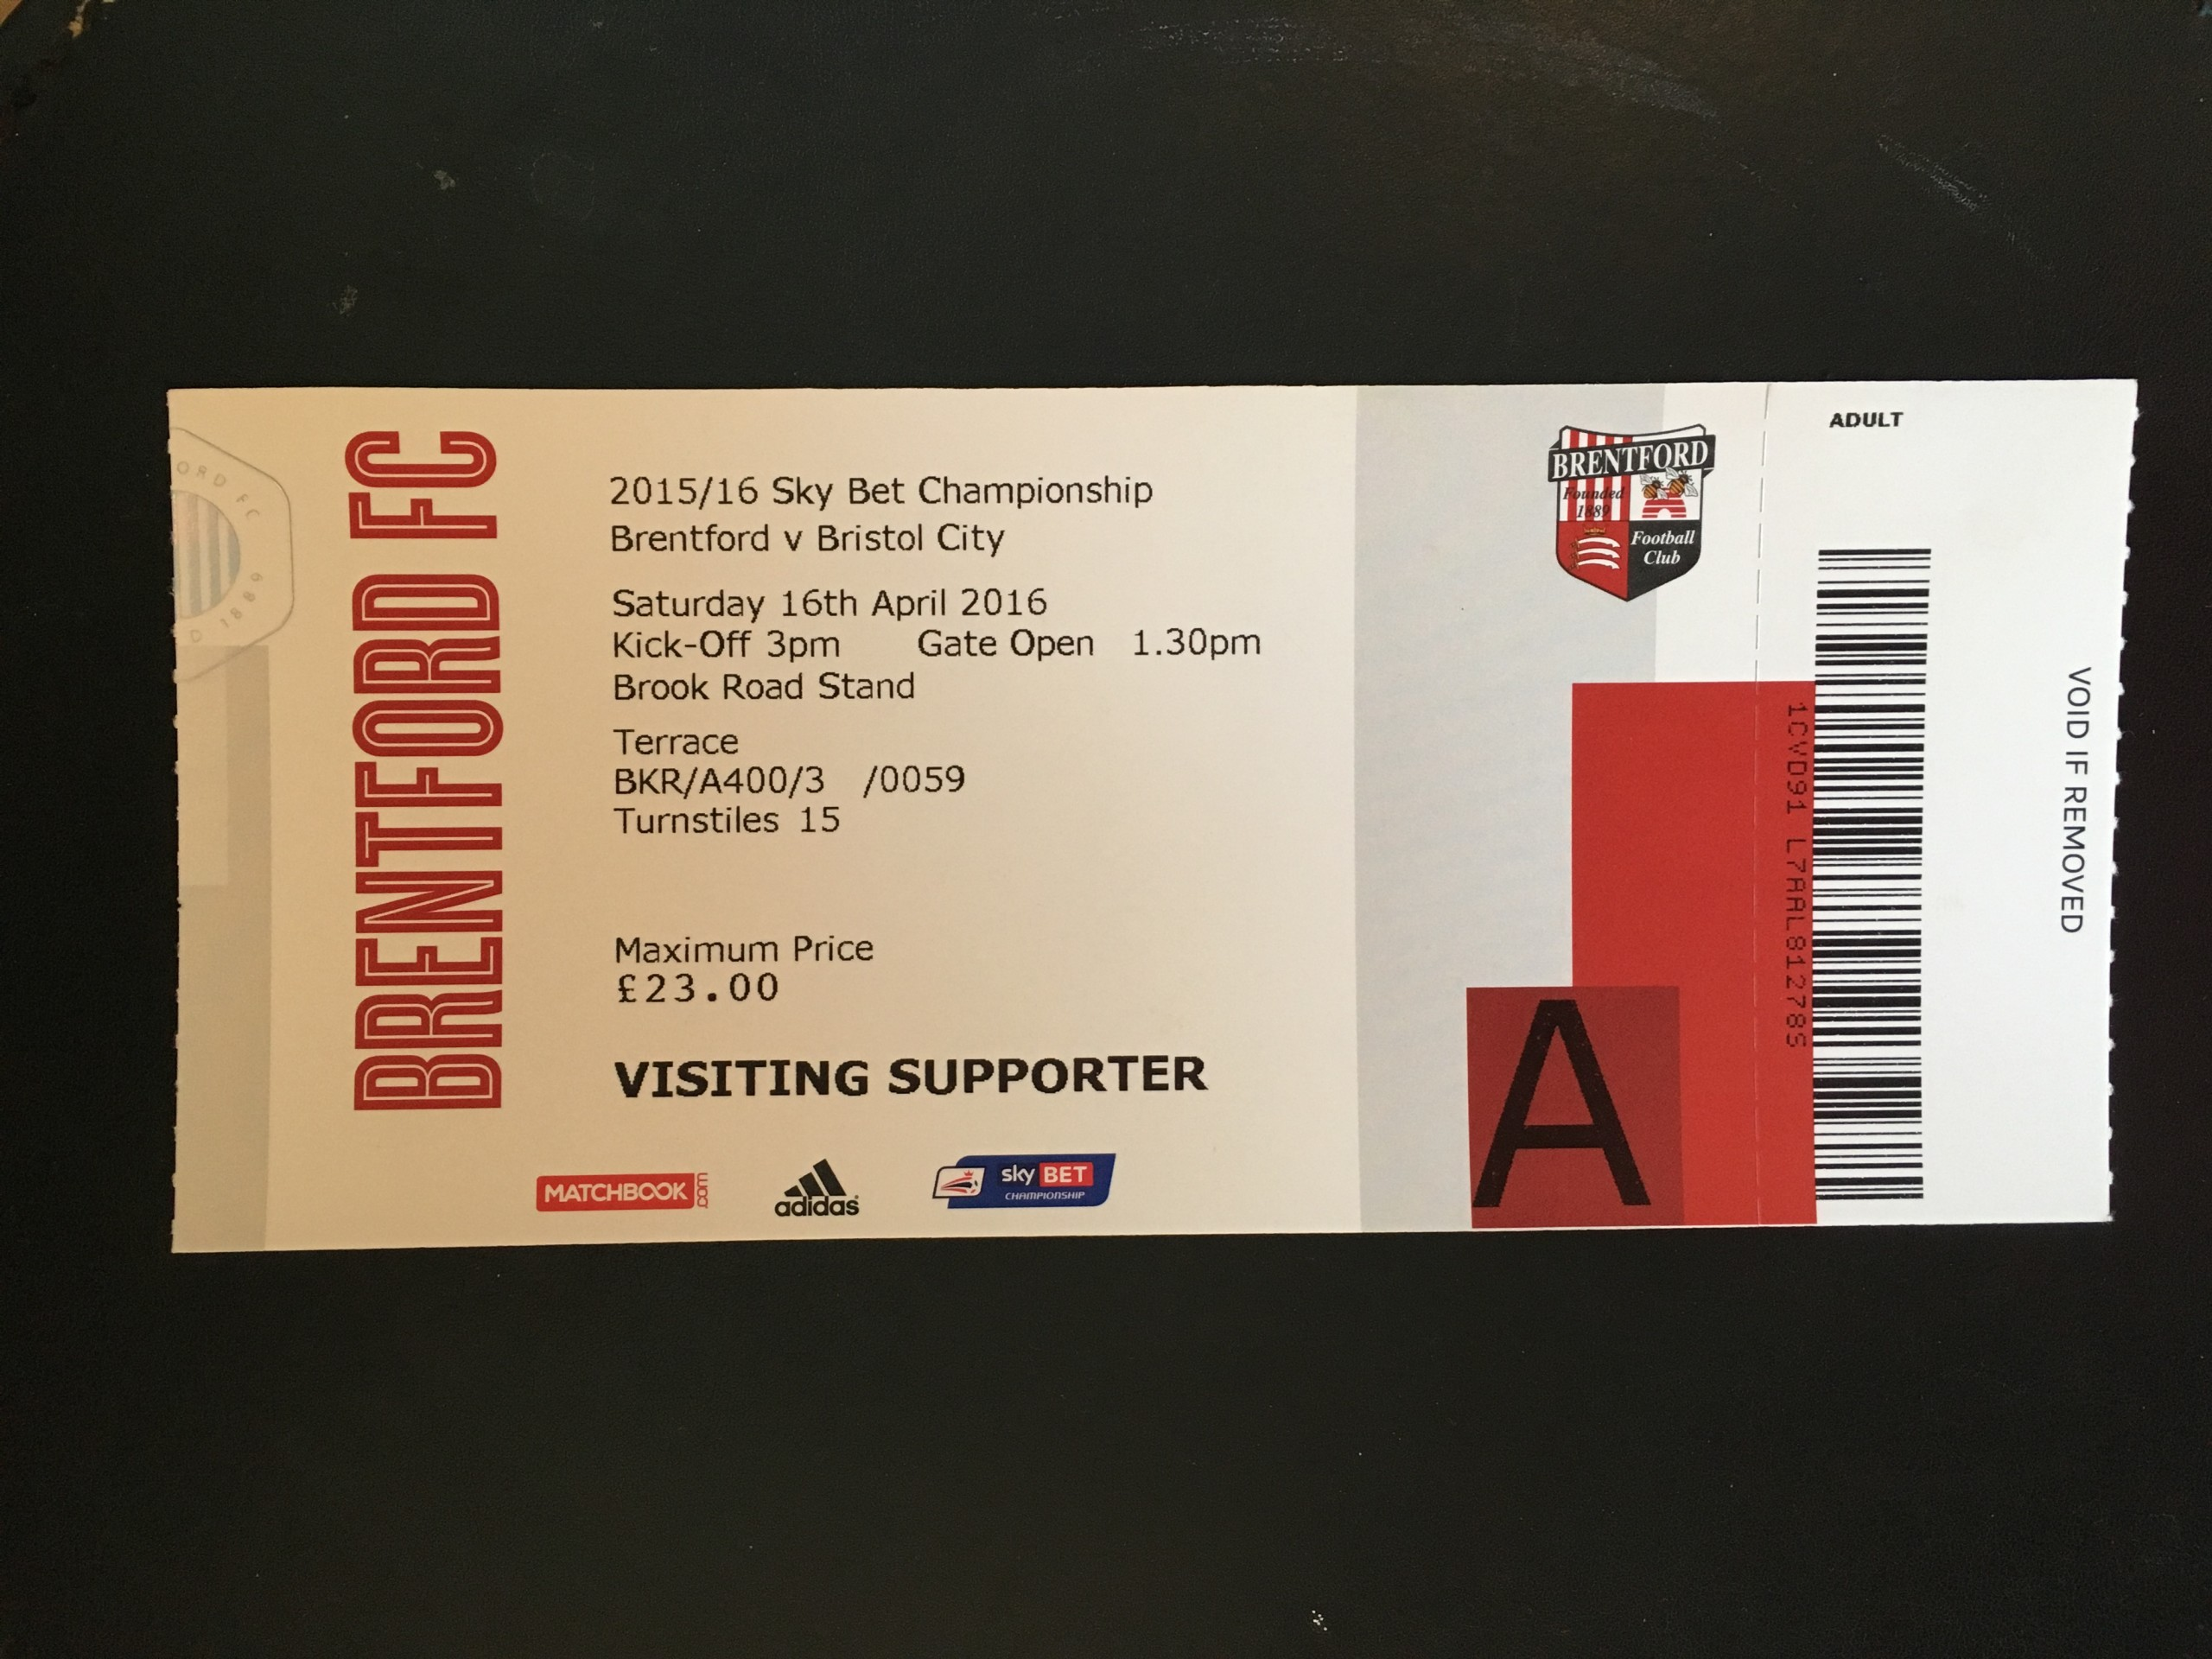 Brentford v Bristol City 16-04-2016 Ticket